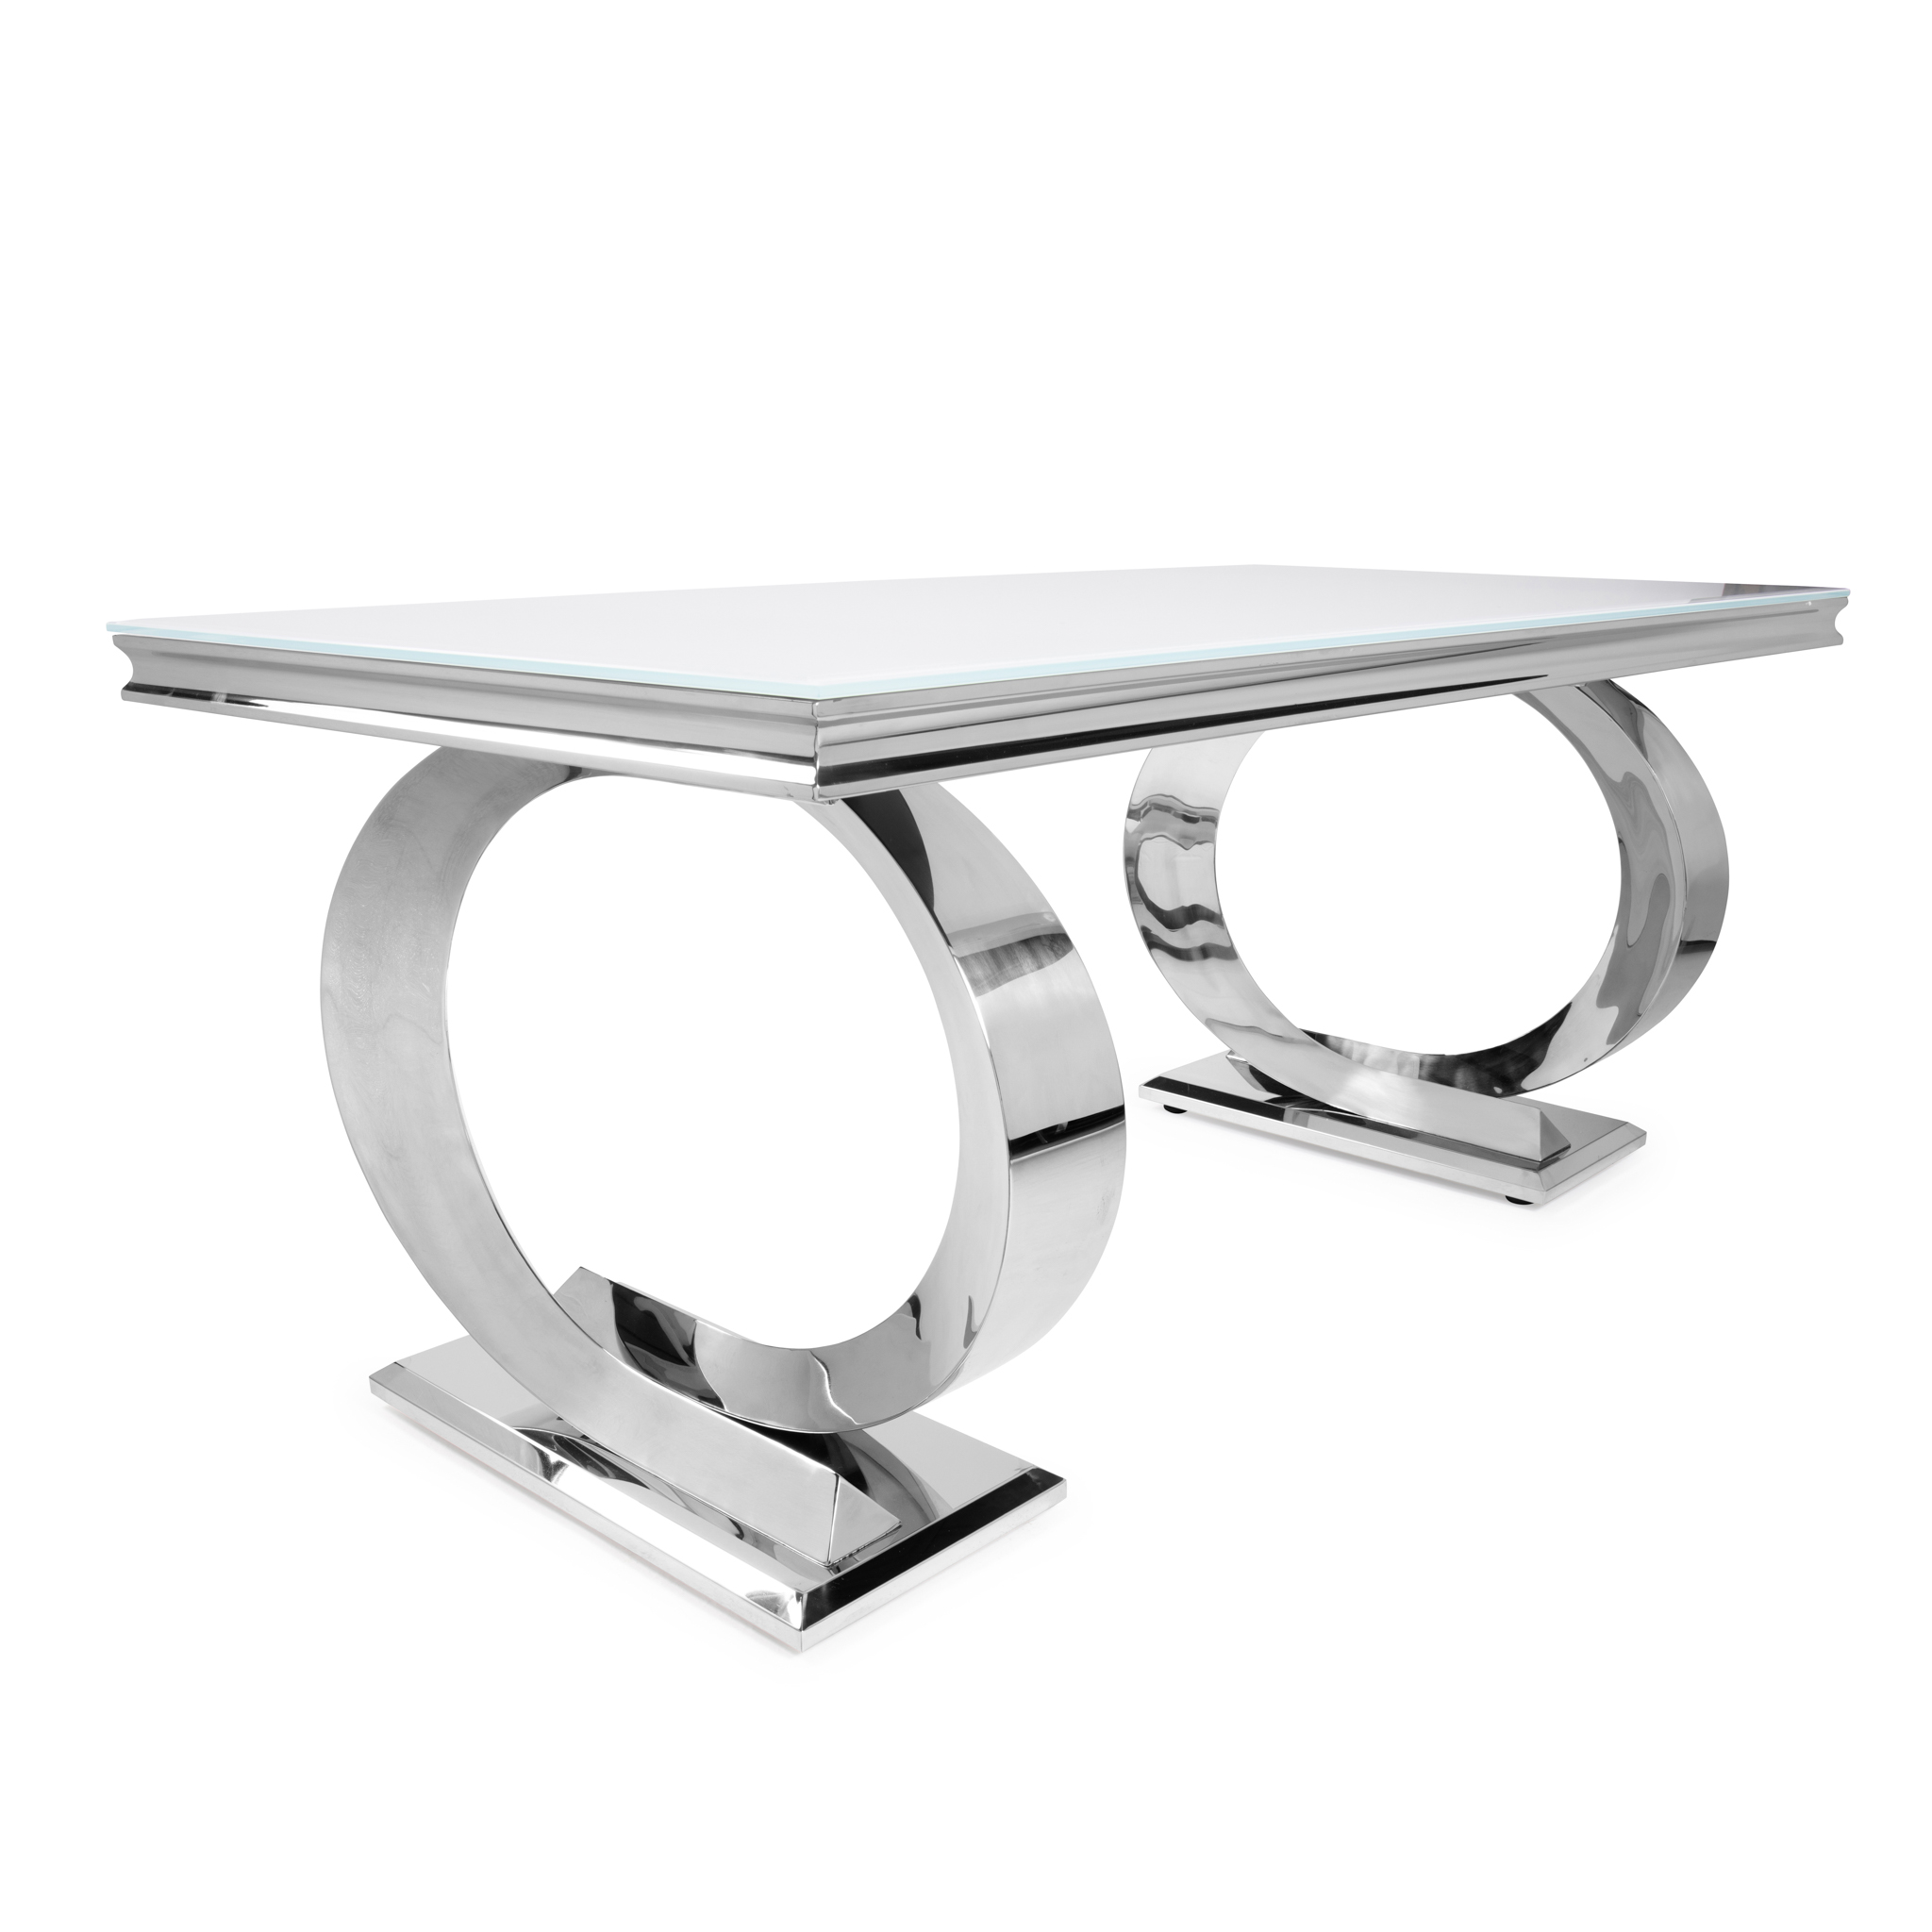 1.8M Pisa Polished Steel Dining Table with White Glass Top